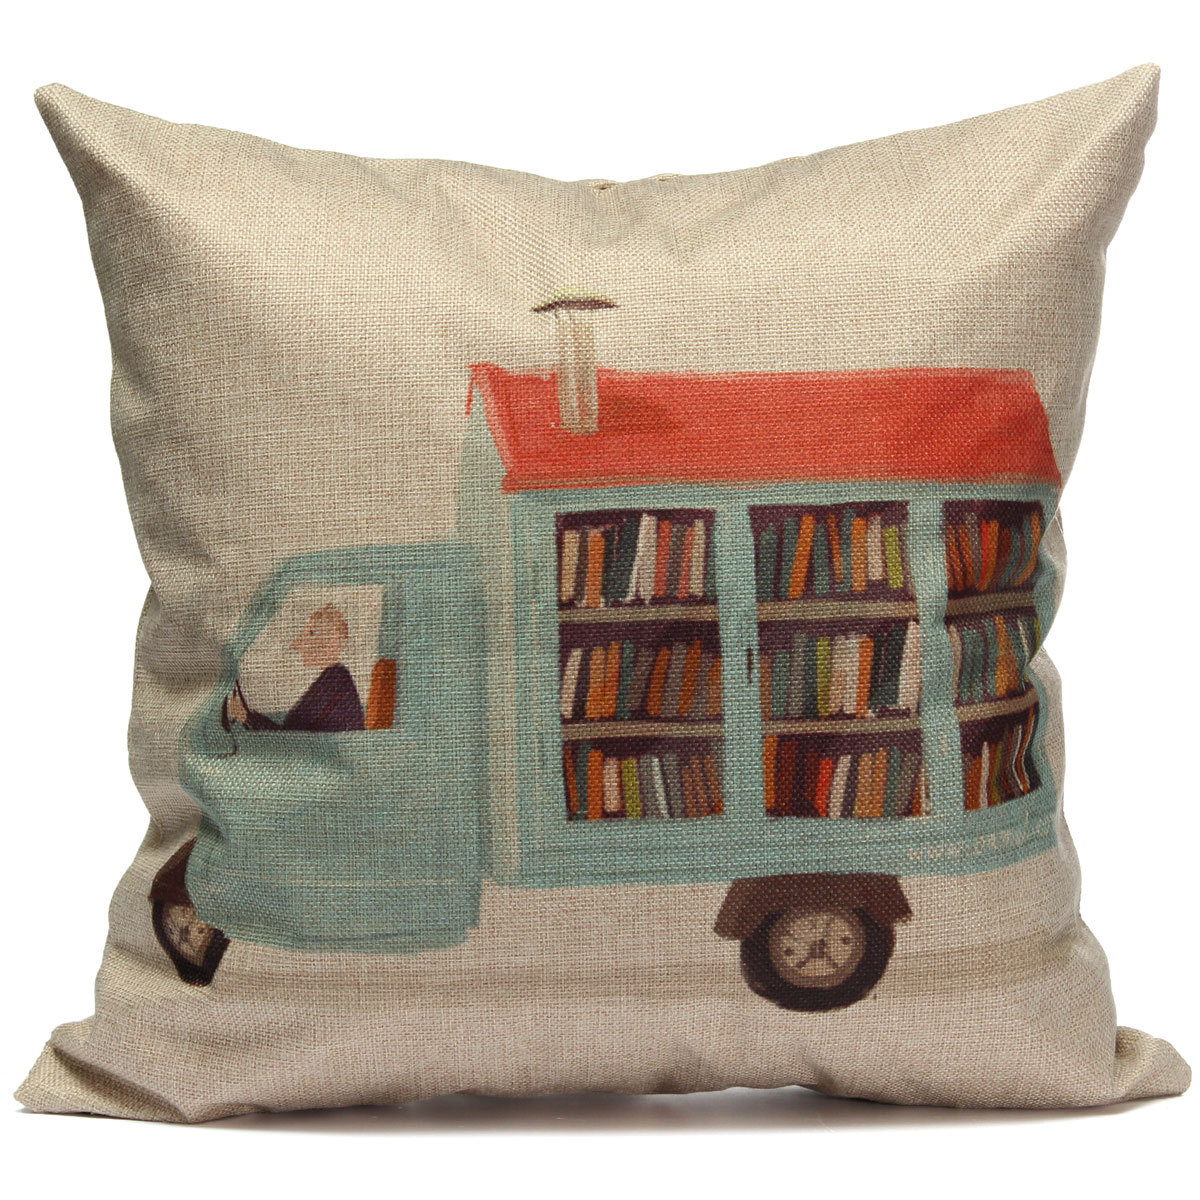 Vintage Square Linen Cotton Throw Pillow Case Cushion